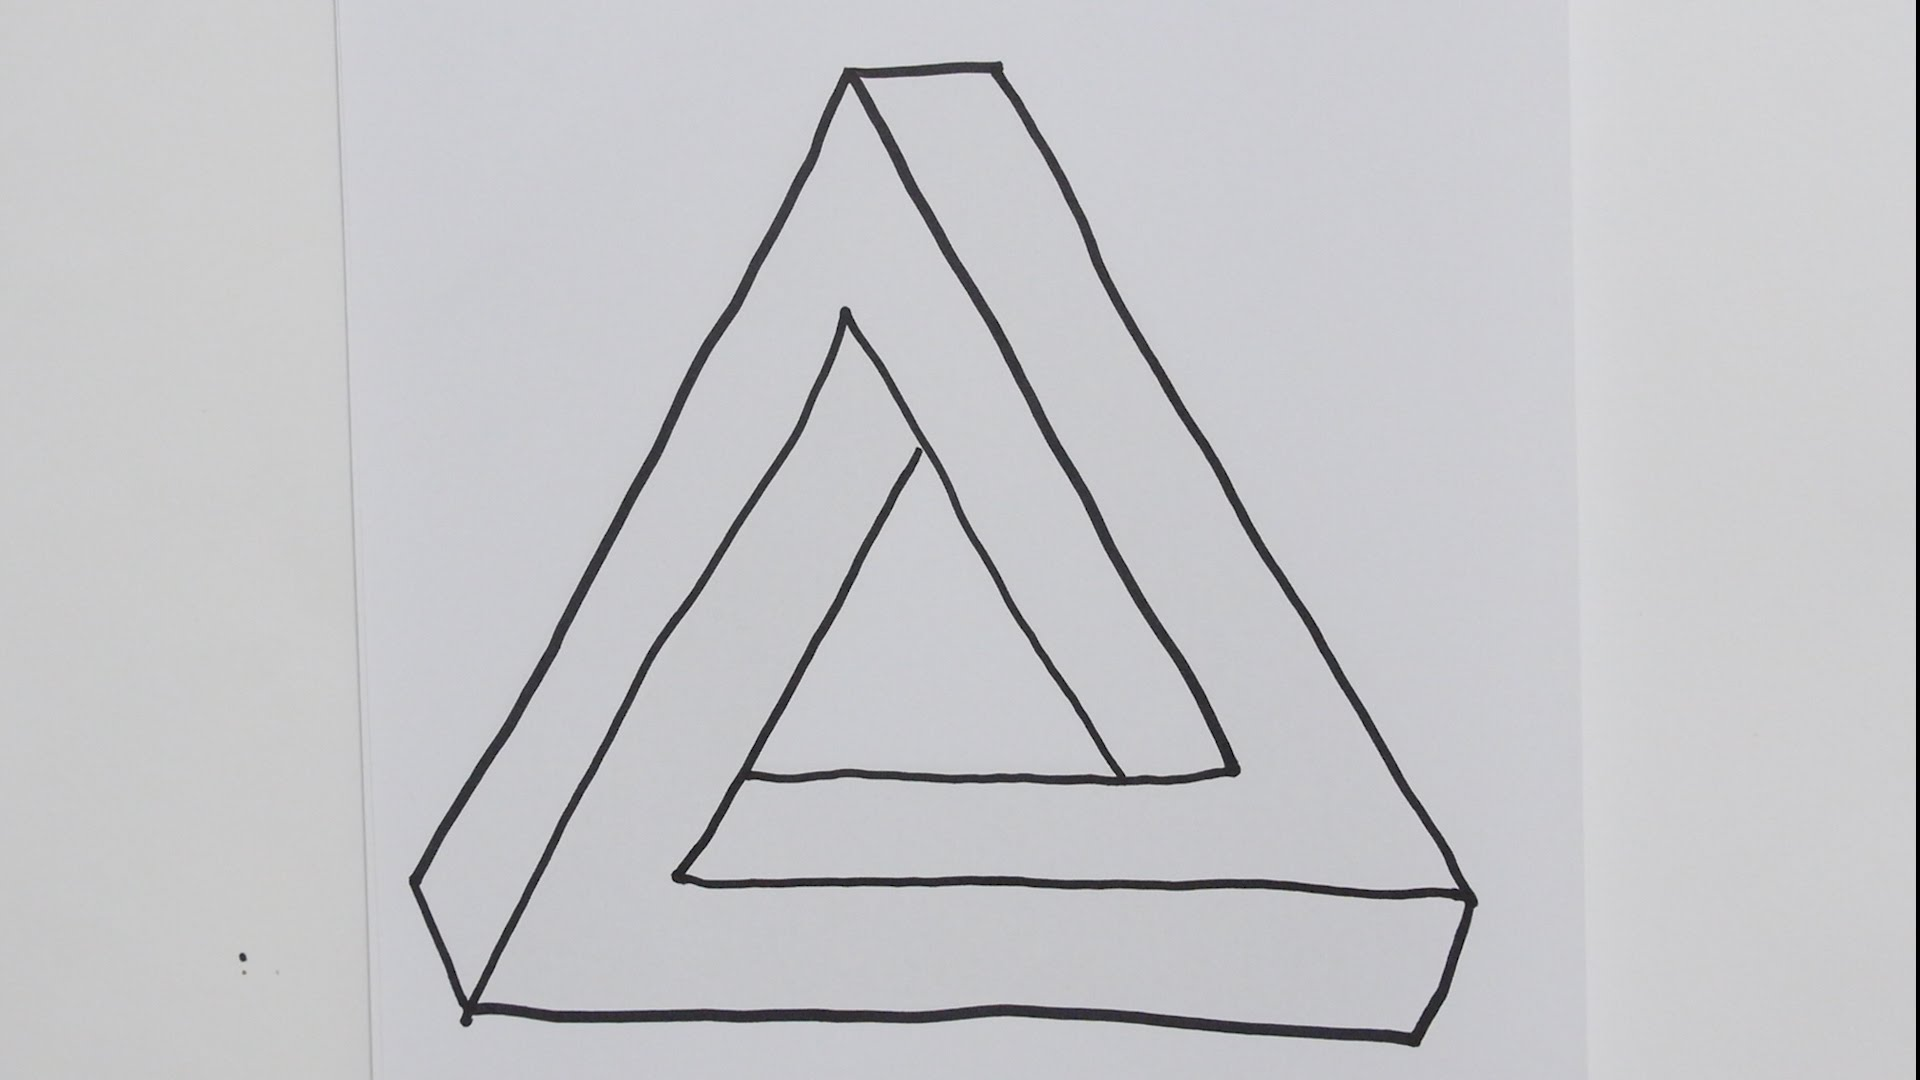 3d Triangle Drawing At Paintingvalley